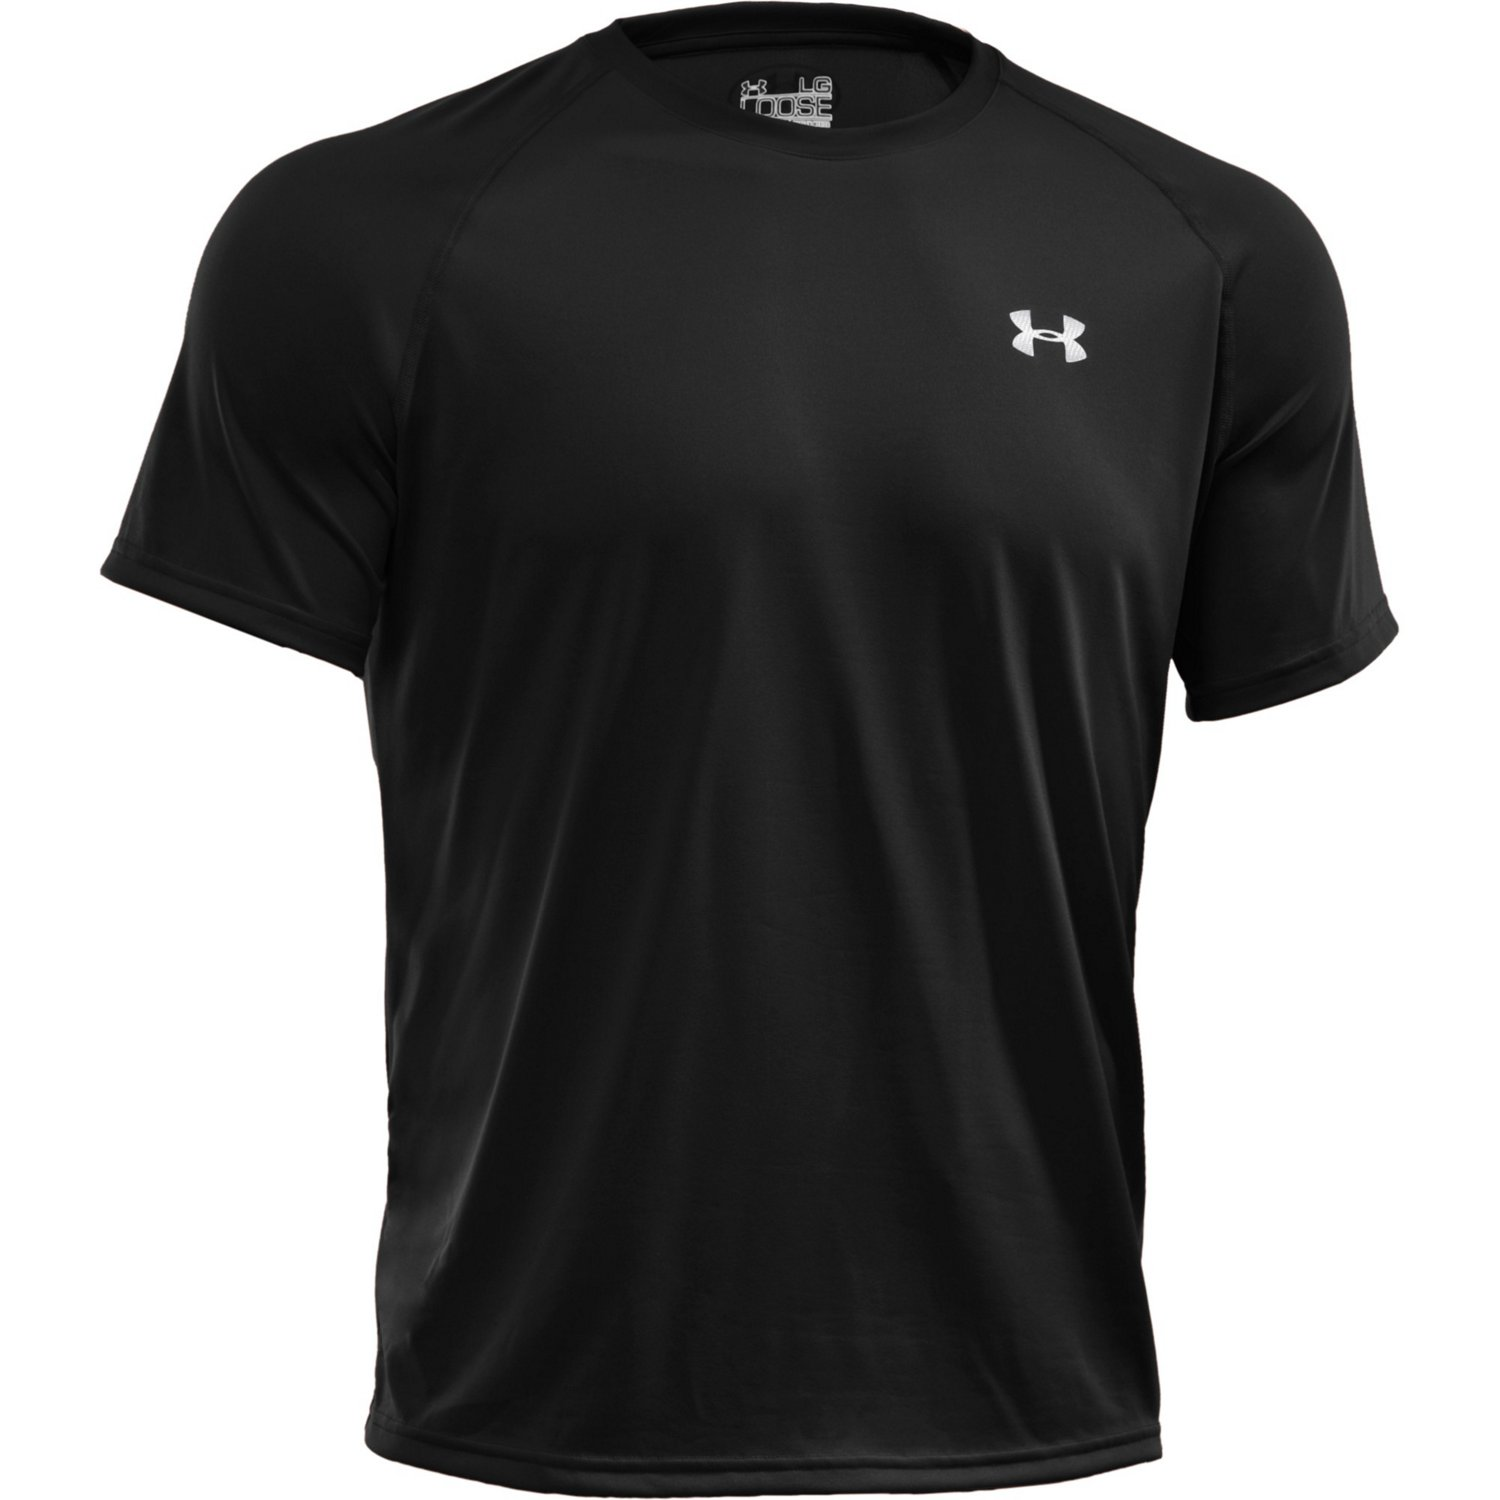 6f721935e05d Under Armour Men s Tech Short Sleeve T-shirt